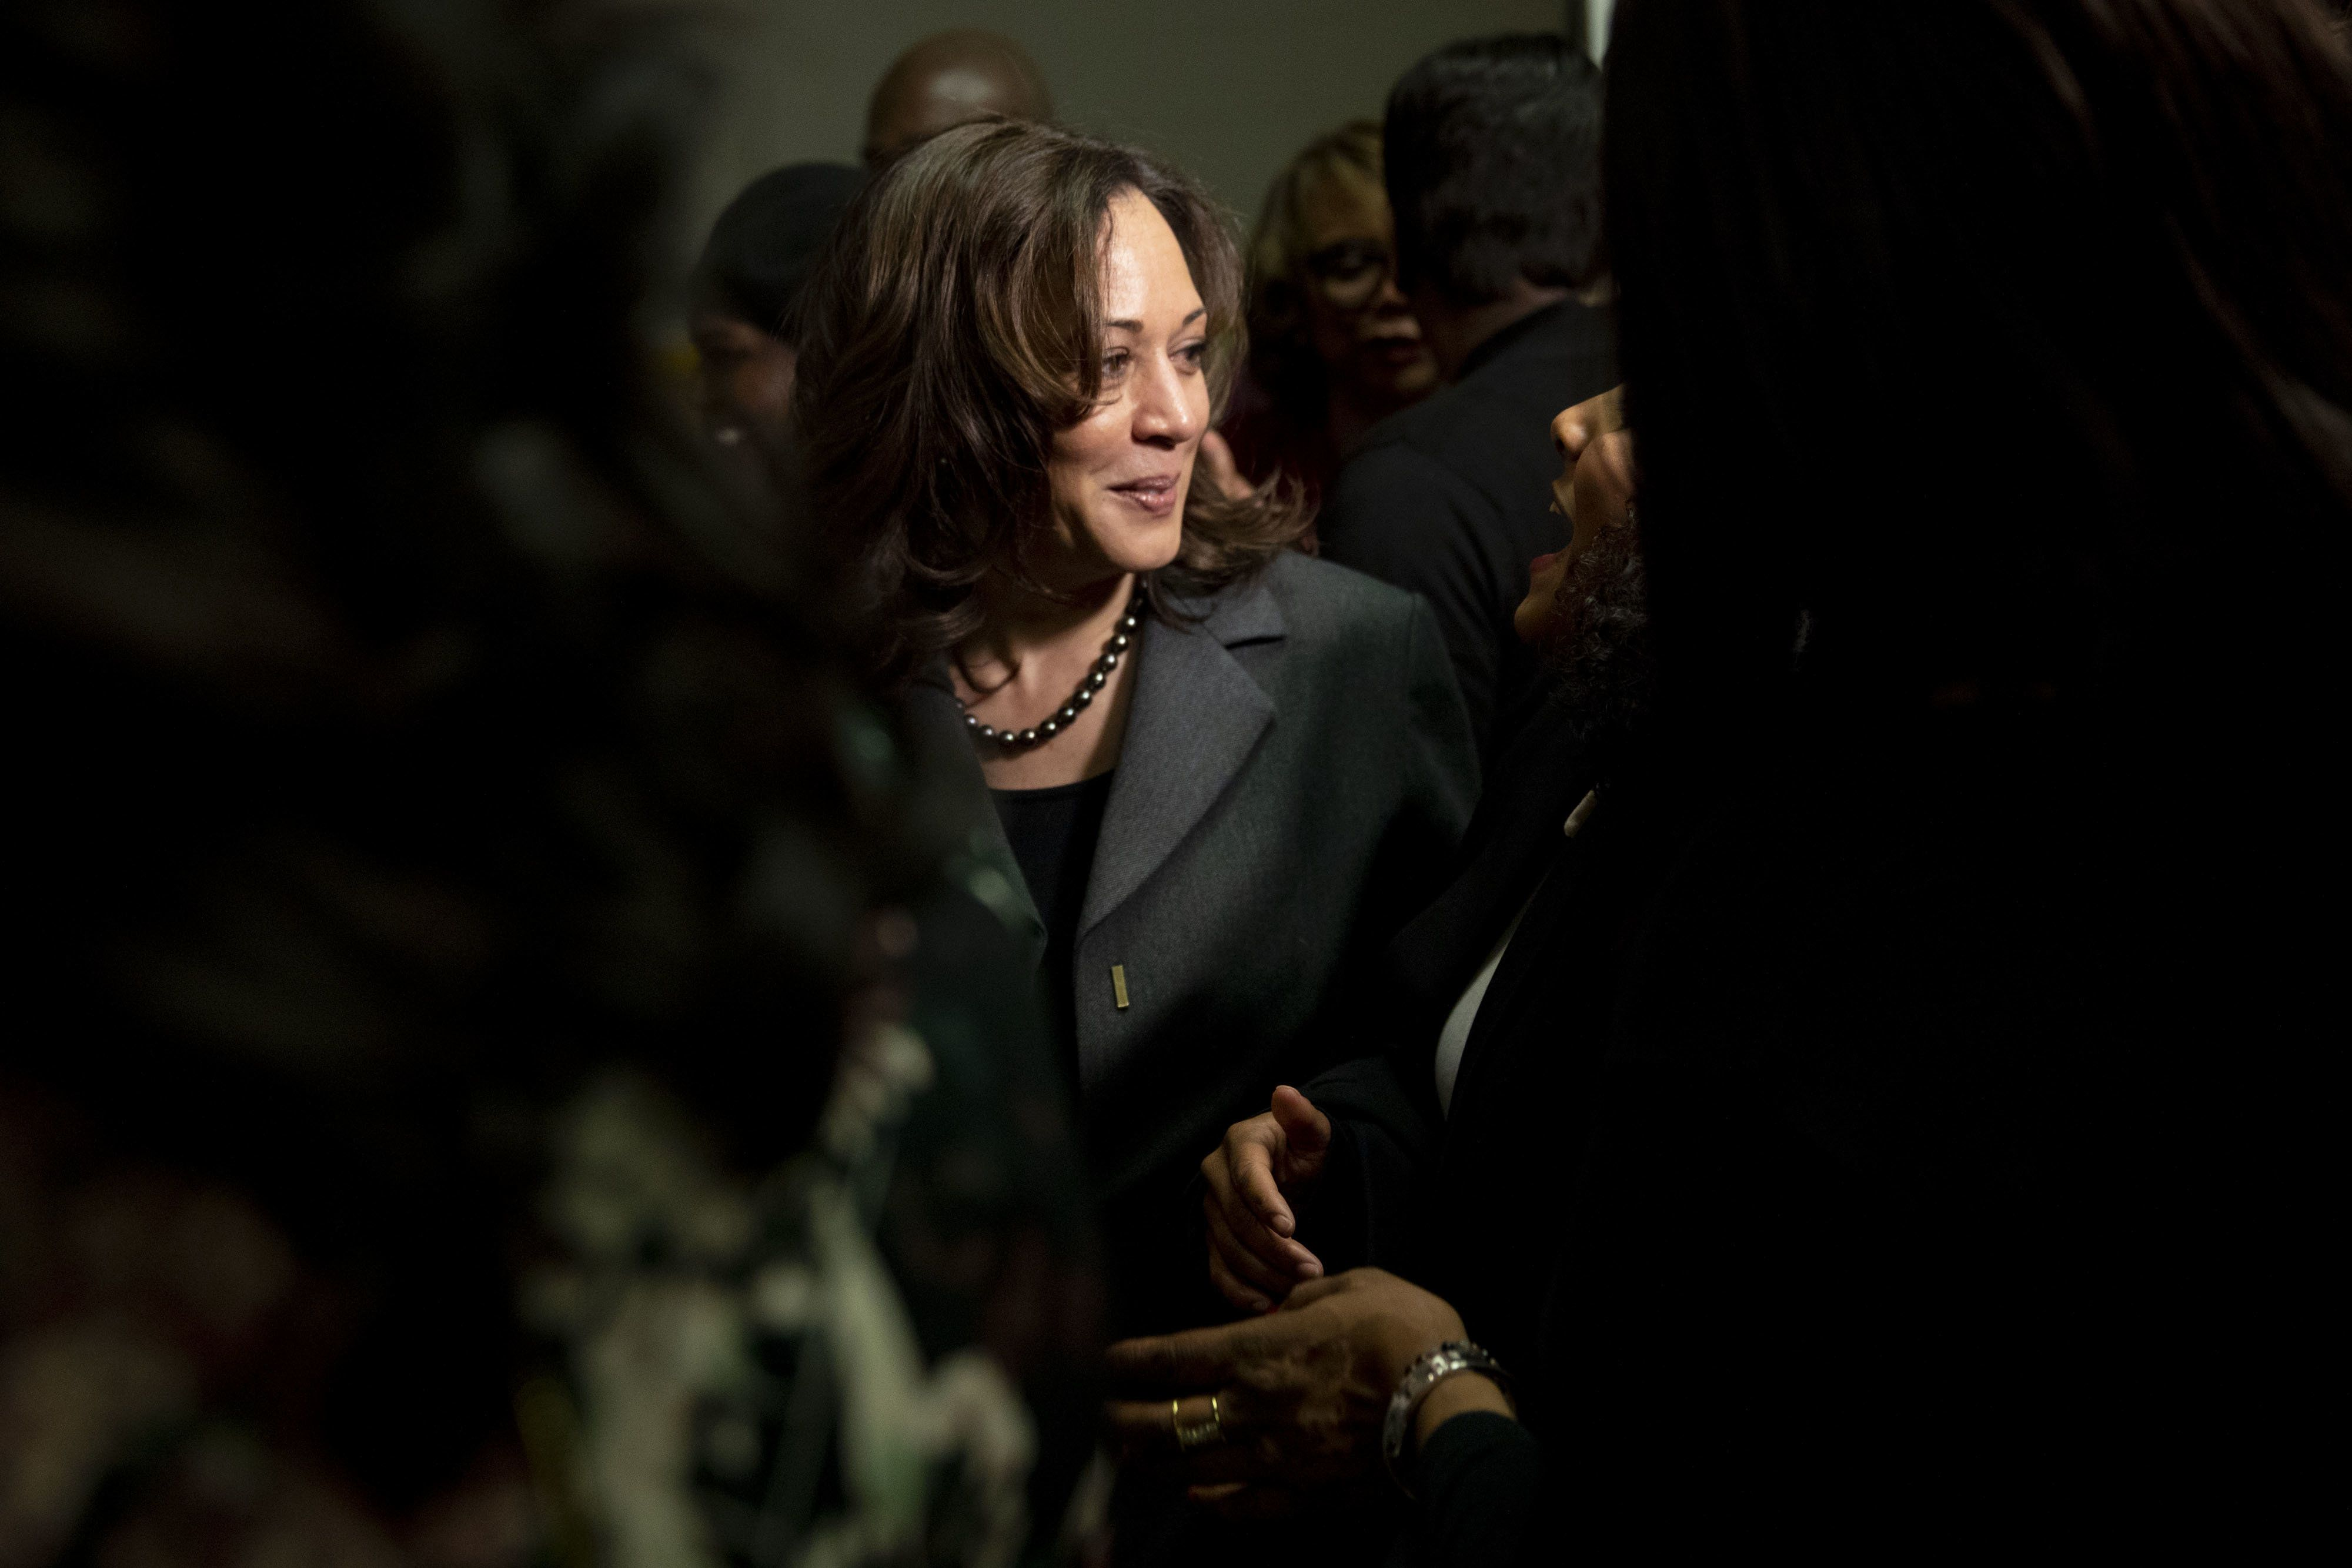 Sen. Kamala Harris campaigns in the early presidential caucus state of Iowa.